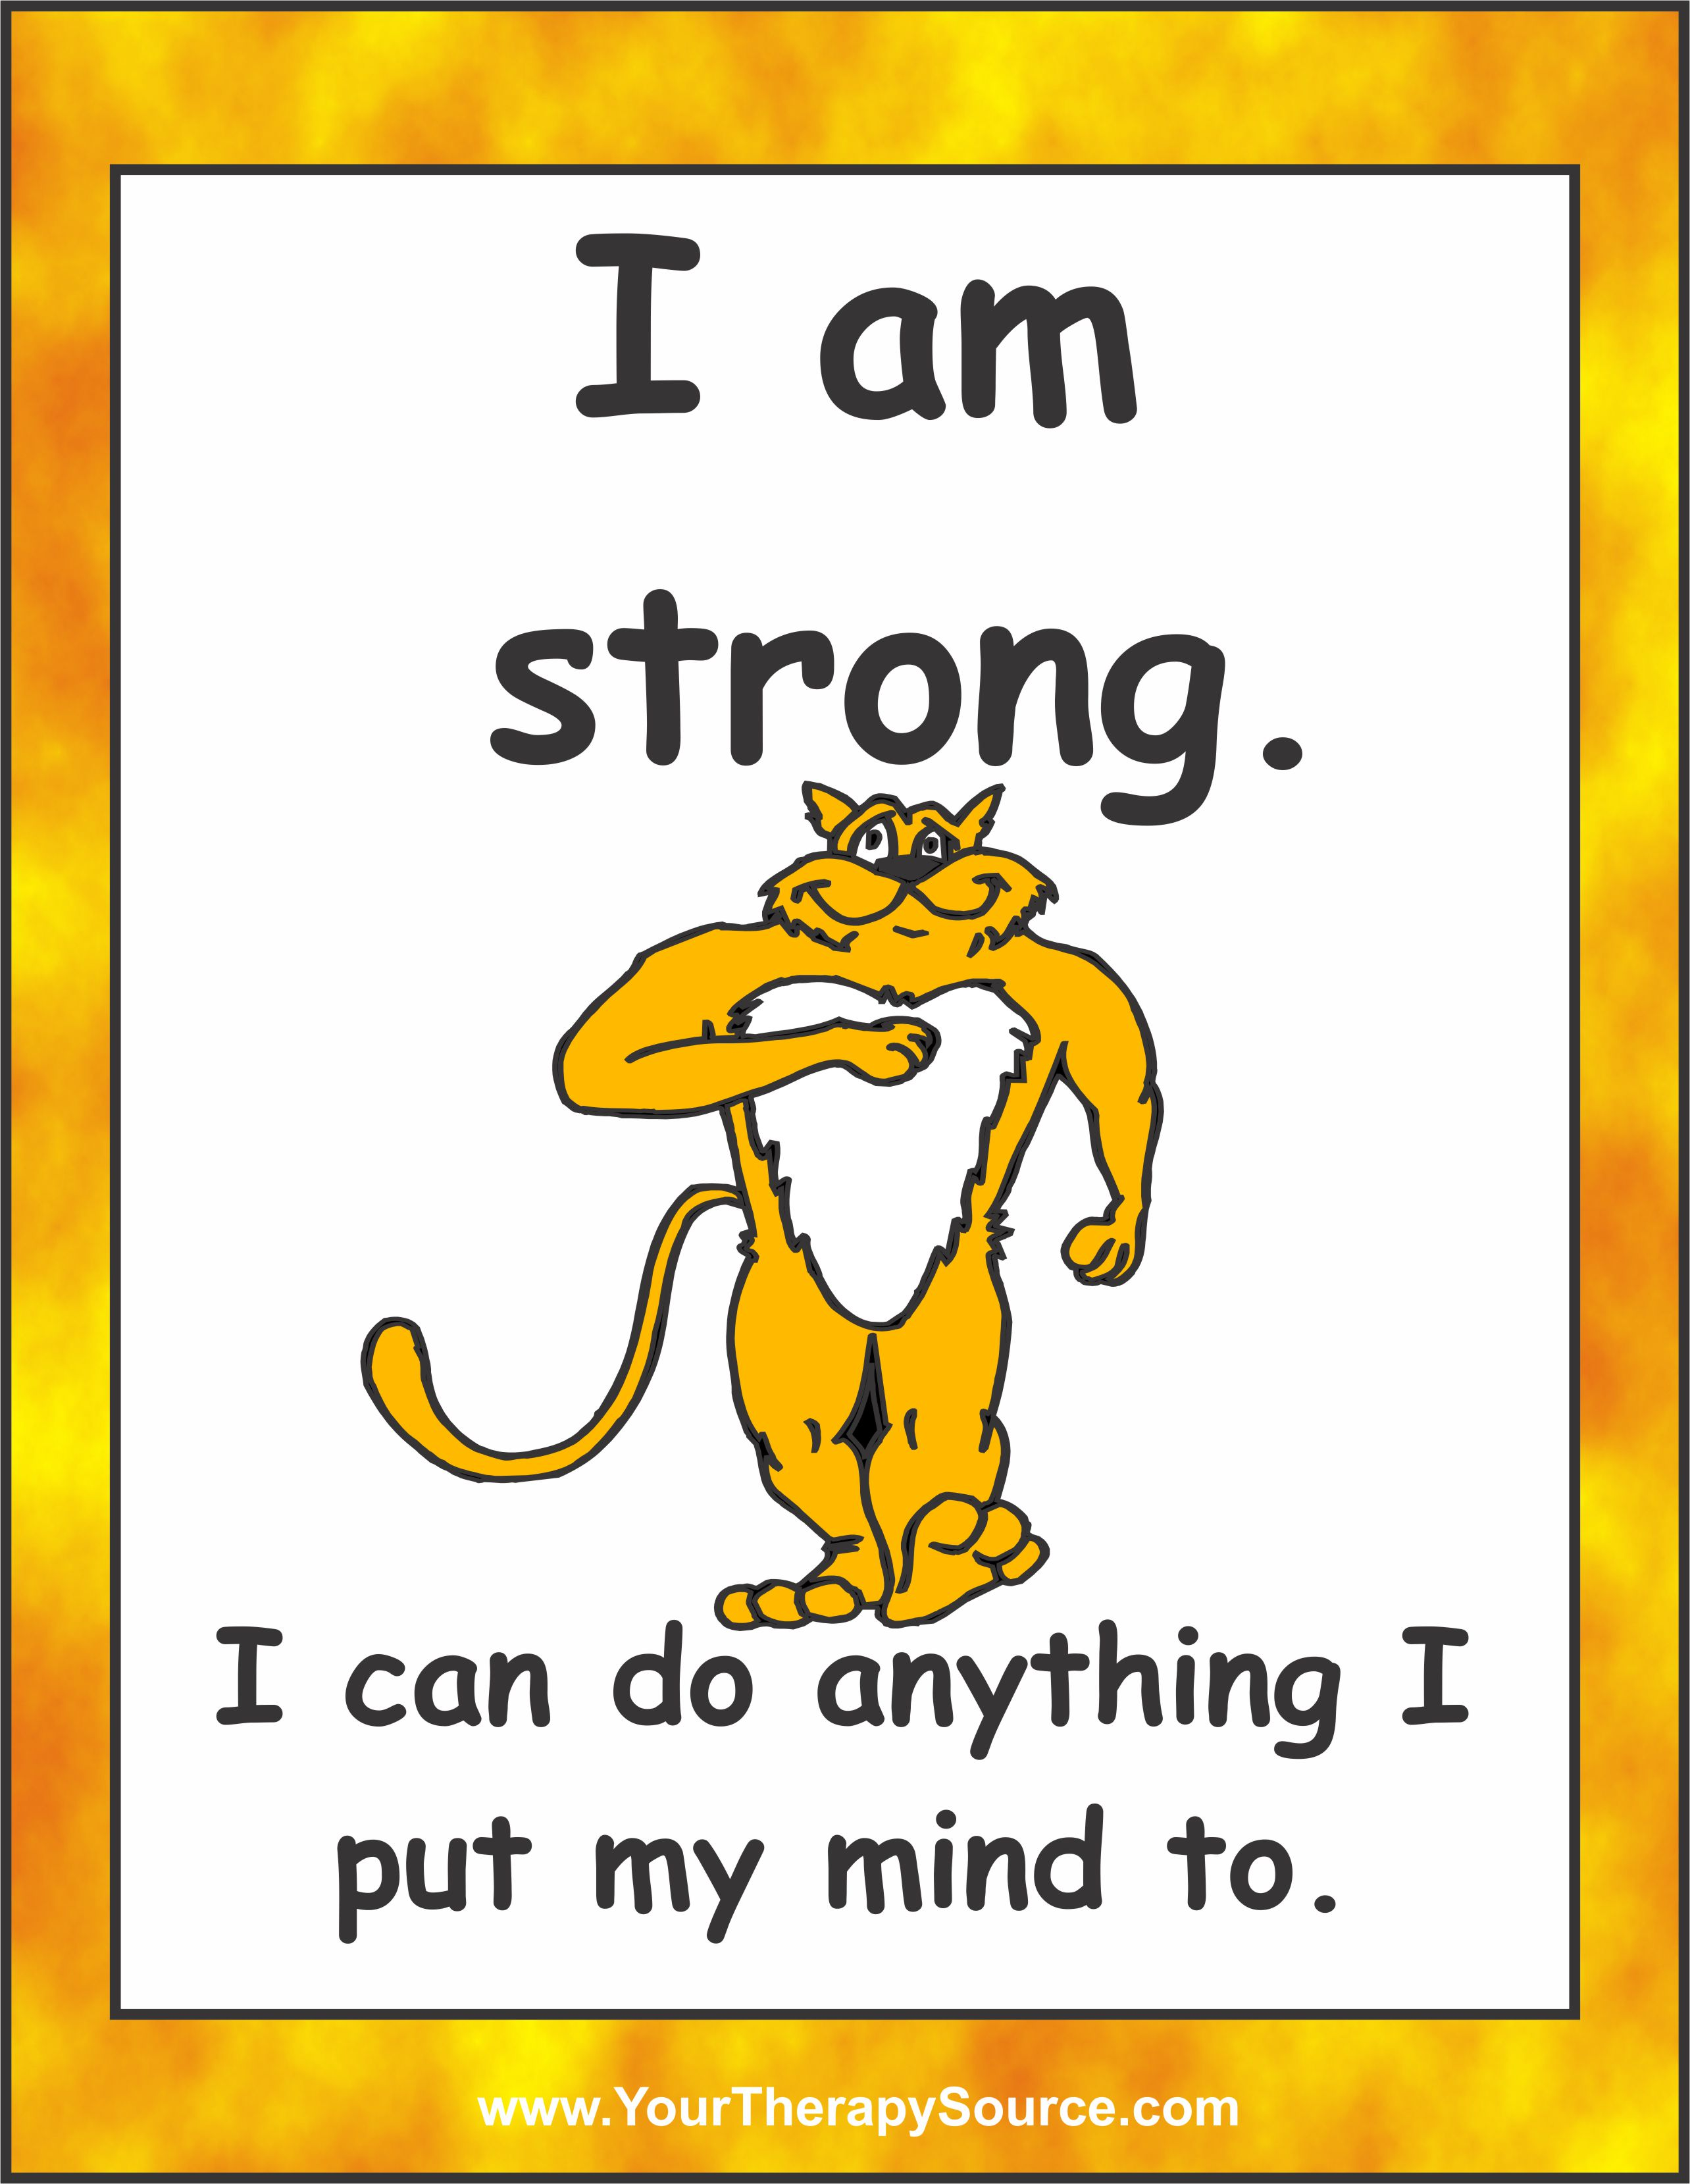 Positive Affirmation Posters And Cards Sample